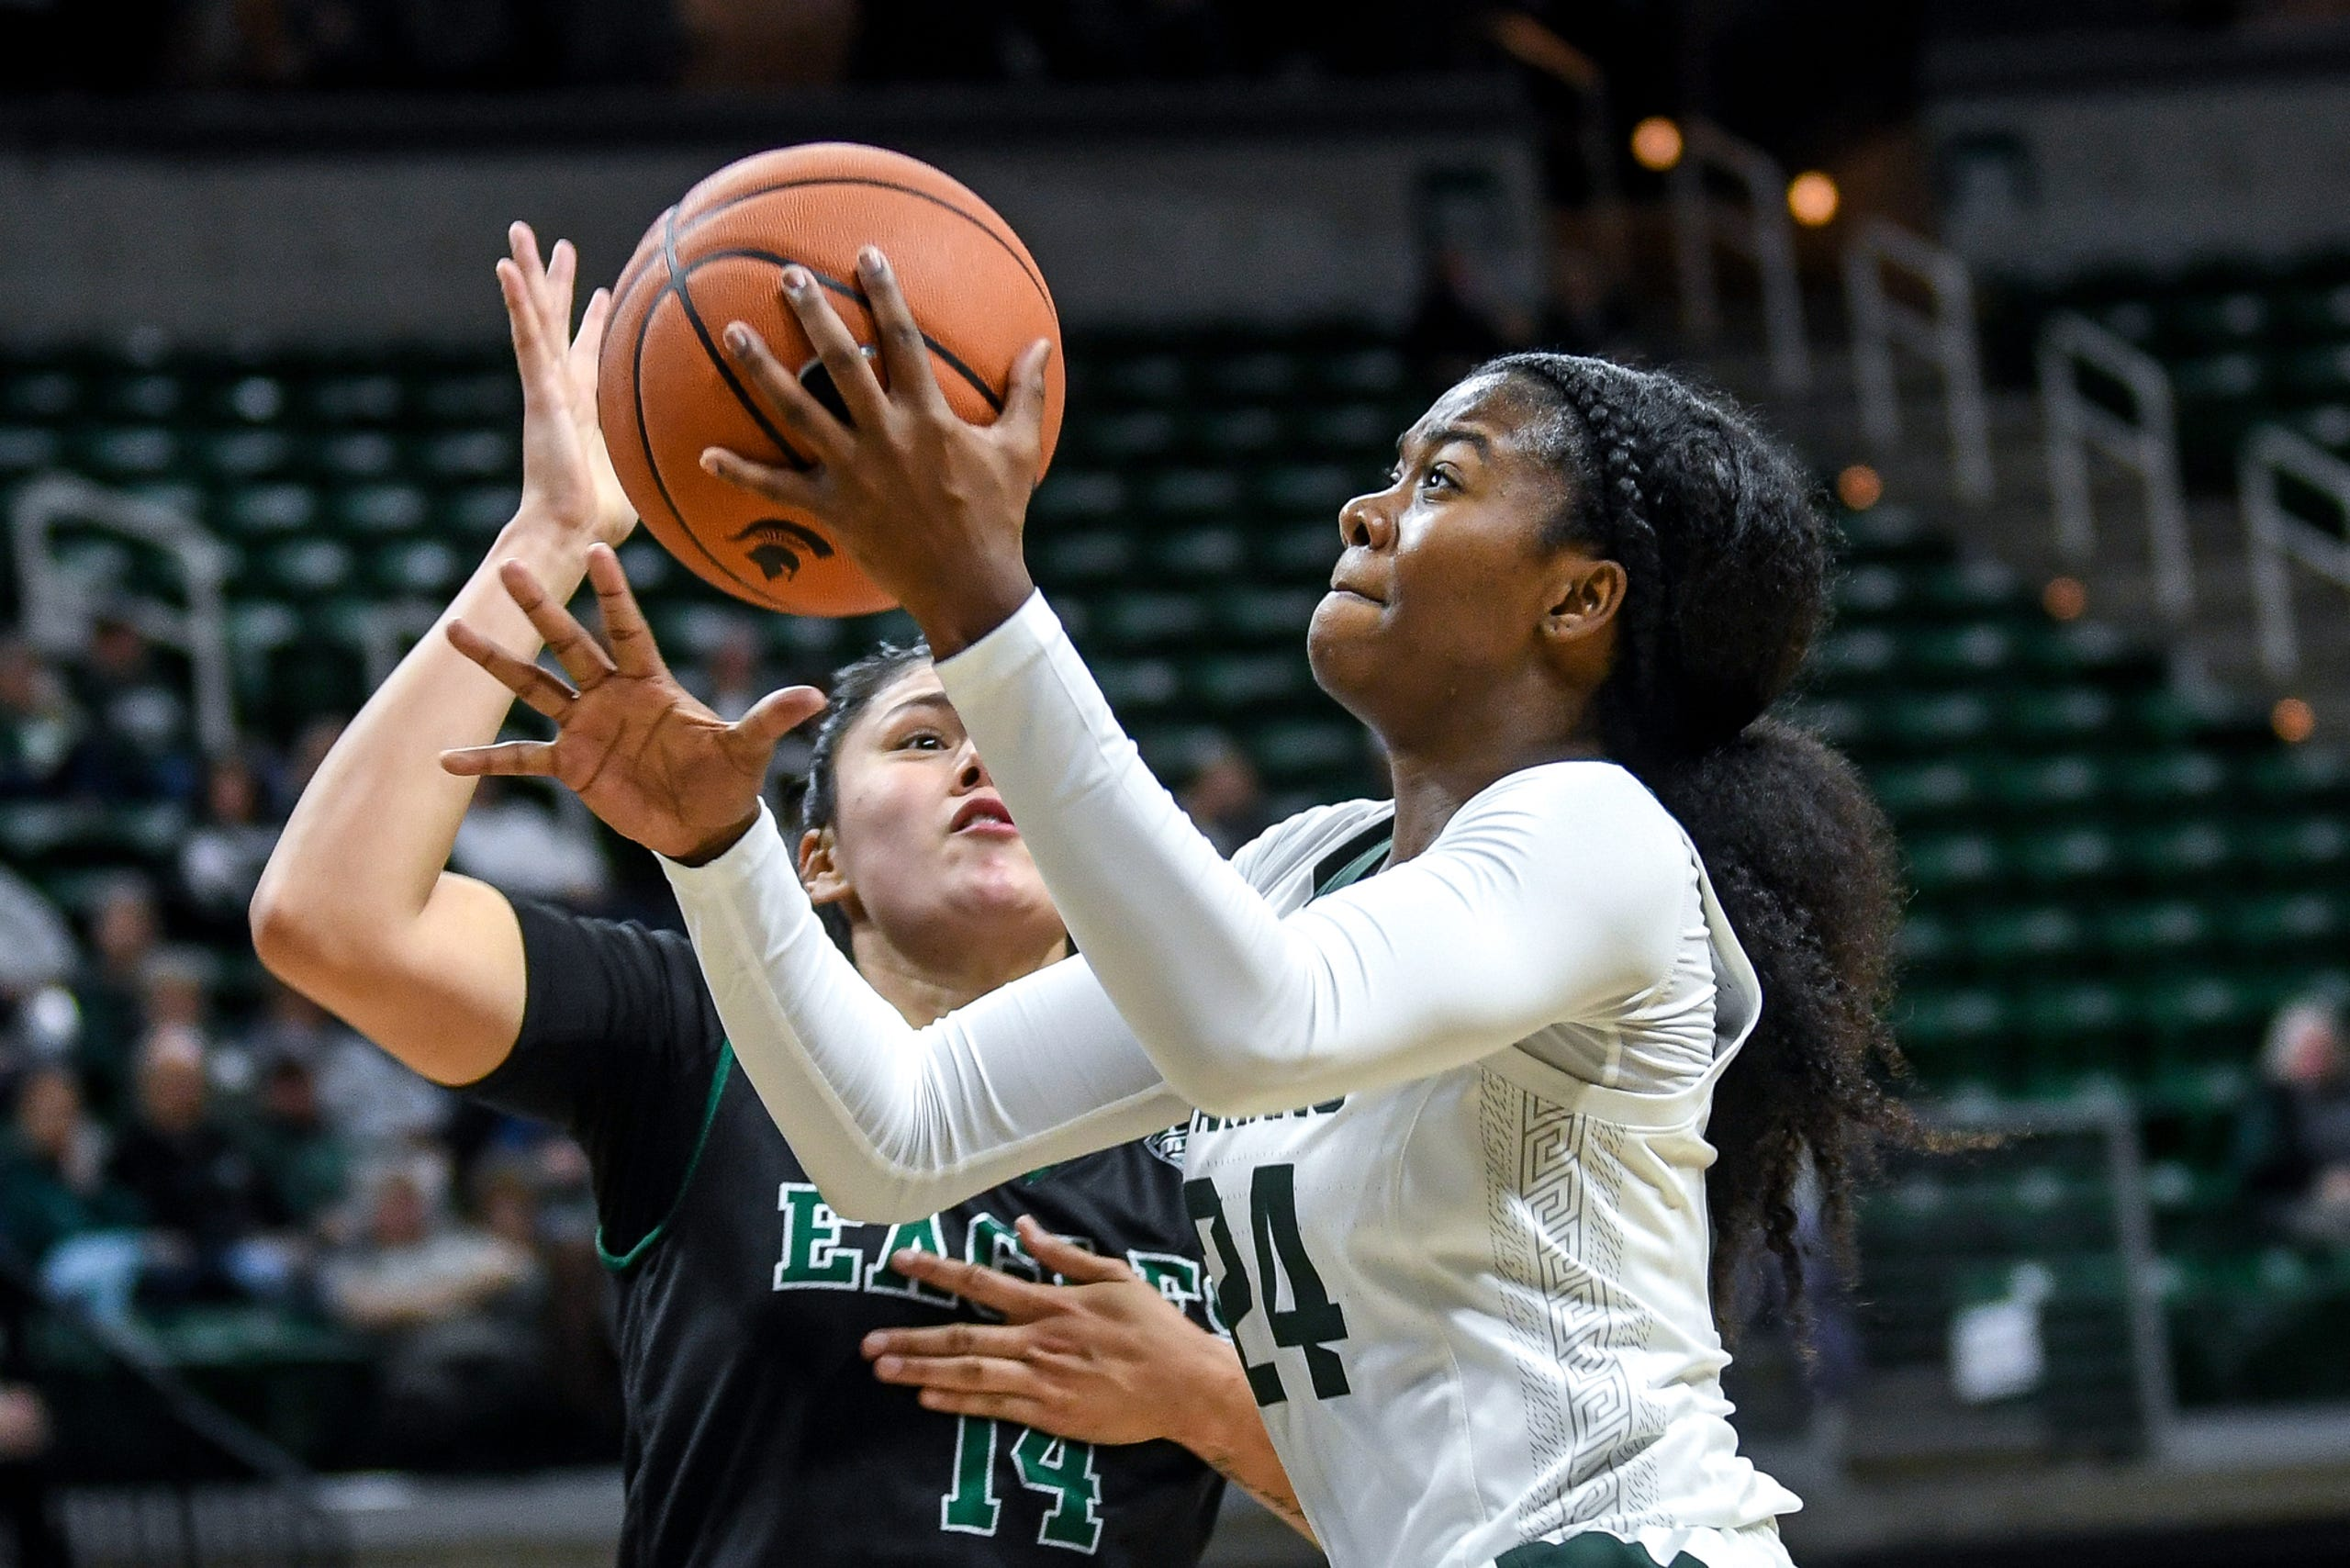 Michigan State's Nia Clouden, right, shoots a basket as Eastern Michigan's Natalia Pineda defends during the fourth quarter on Tuesday, Nov. 5, 2019, at the Breslin Center in East Lansing.